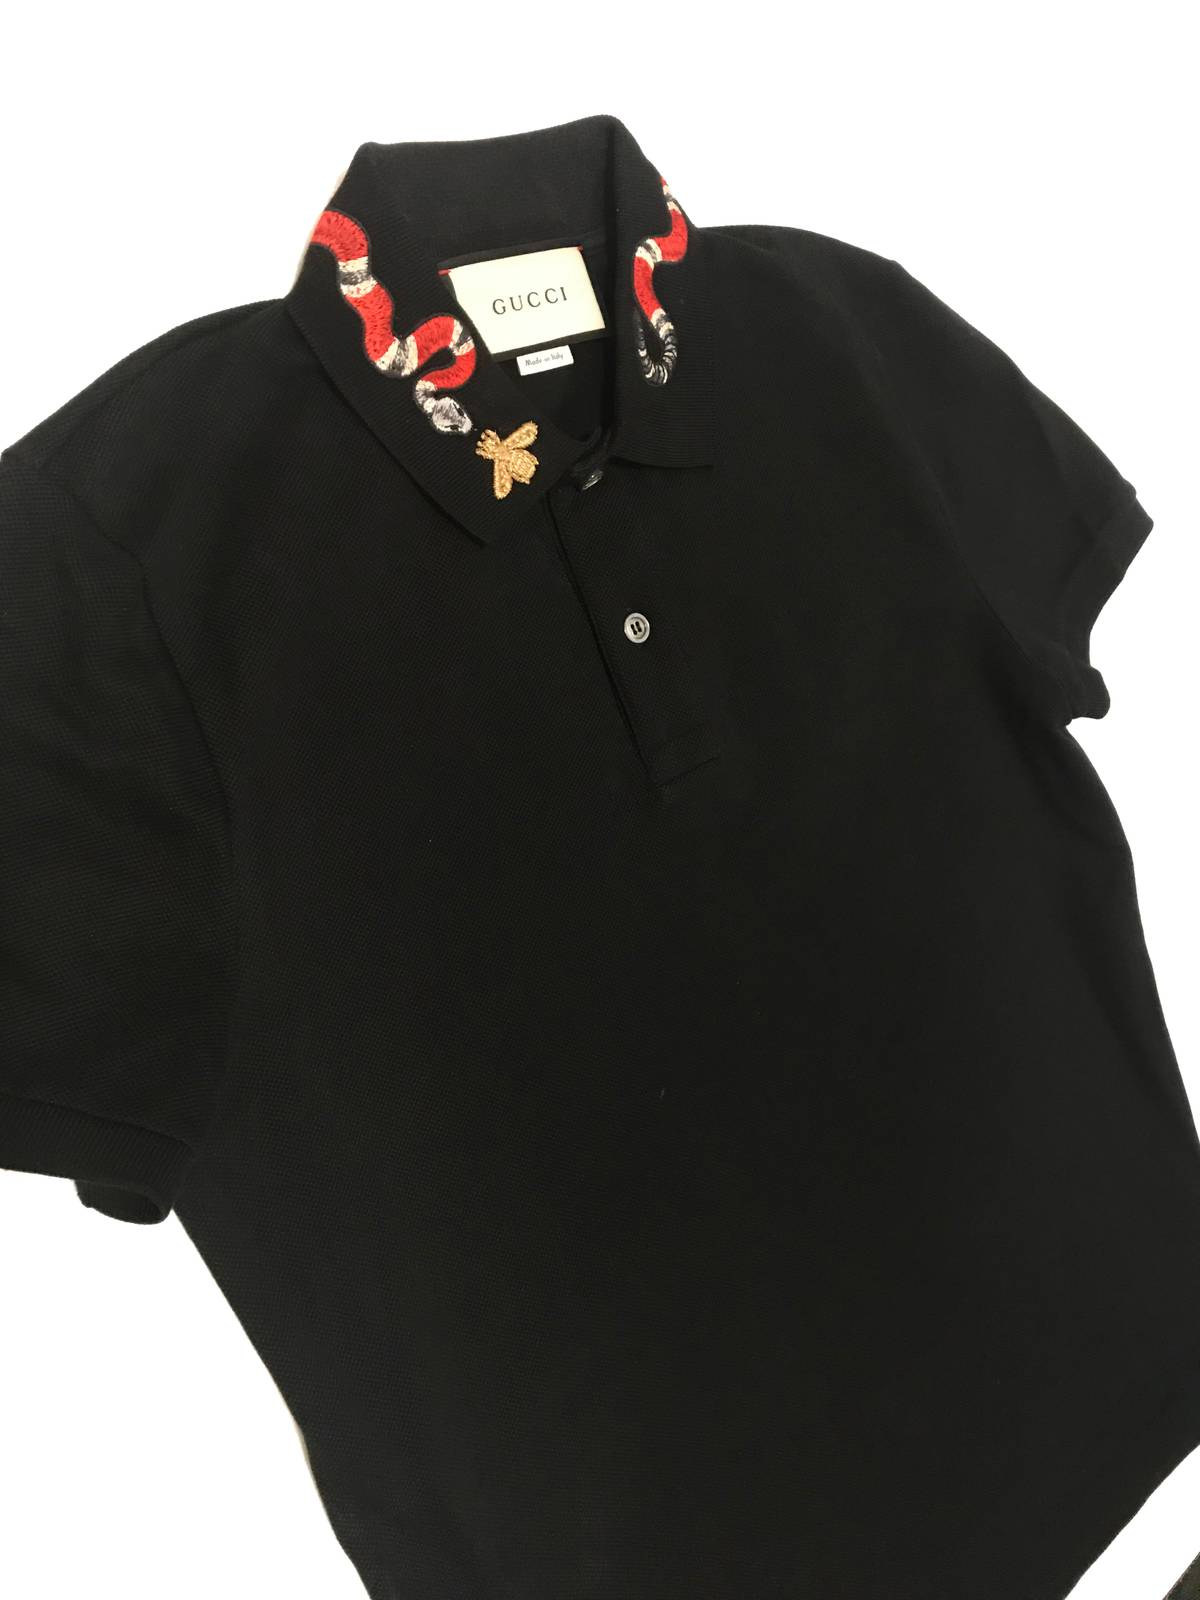 61ef2268e Gucci Cotton Polo with Kingsnake Embroidery Size s - Polos for Sale -  Grailed